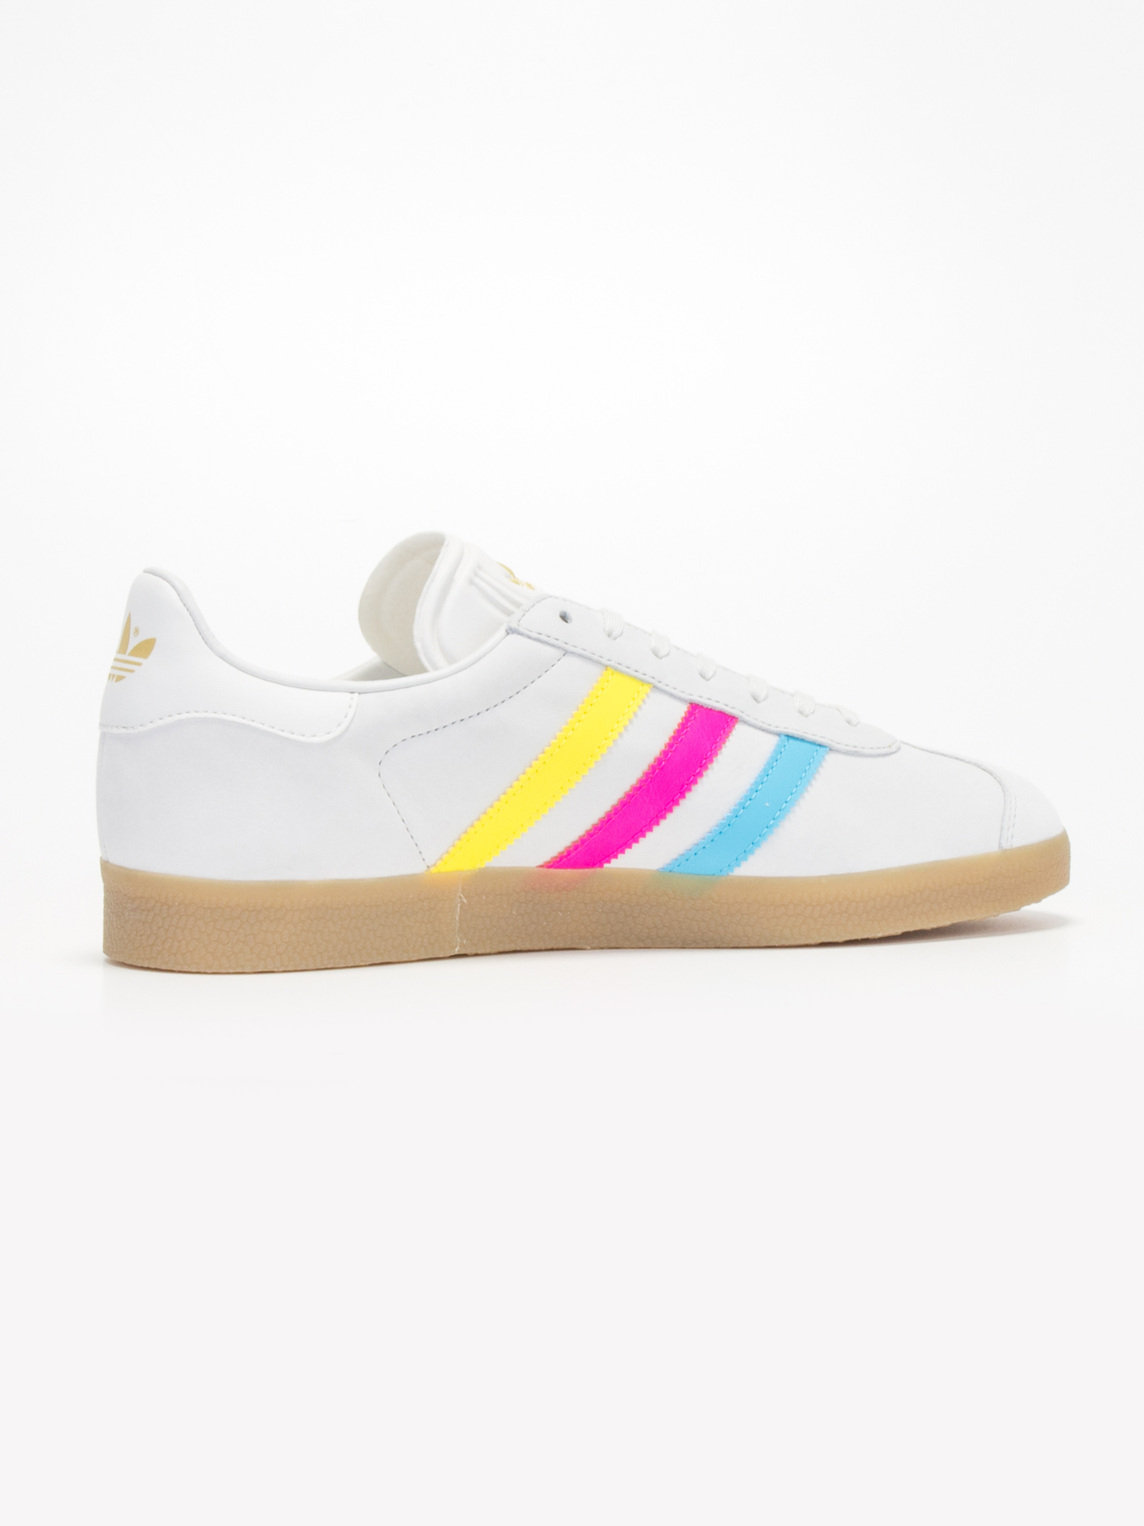 premium selection e63ba 252c5 Theres nothing quite like a fresh pair of adidas to complete a Spring  outfit and the recently released Color Stripe pack have been designed  with warmer ...